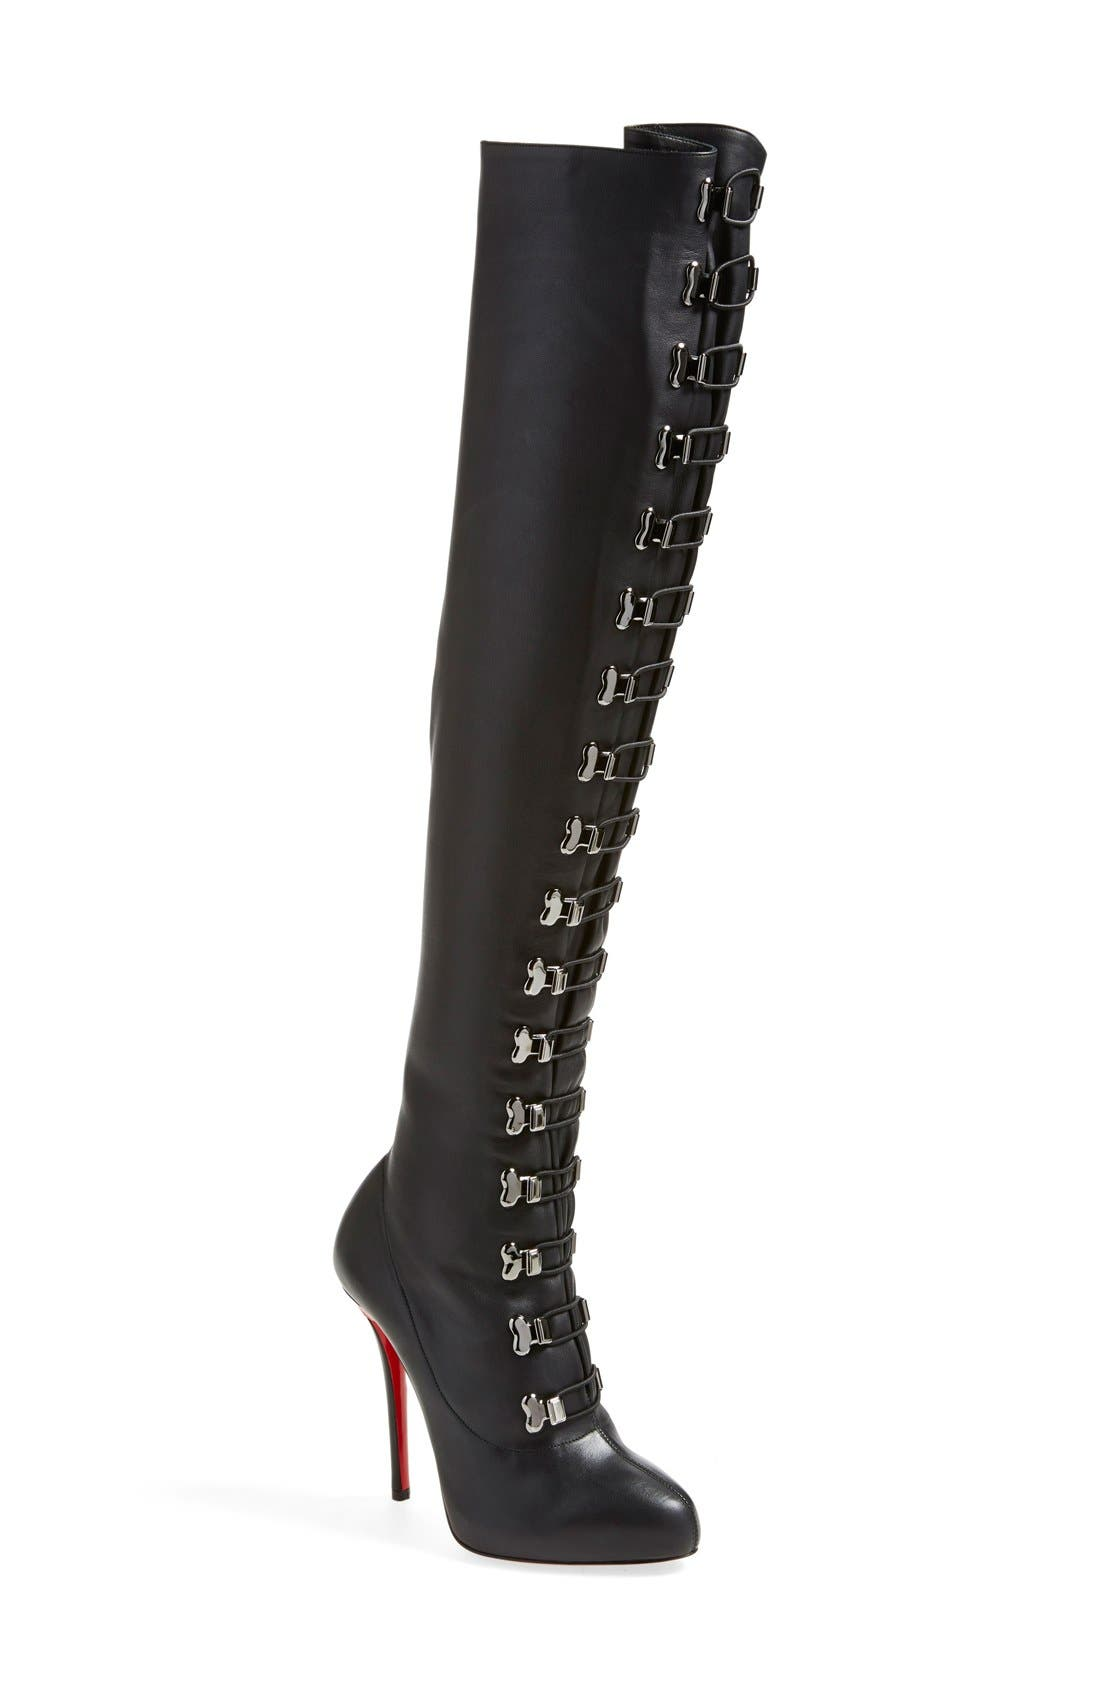 Alternate Image 1 Selected - Christian Louboutin 'Top Croche' Over the Knee Boot